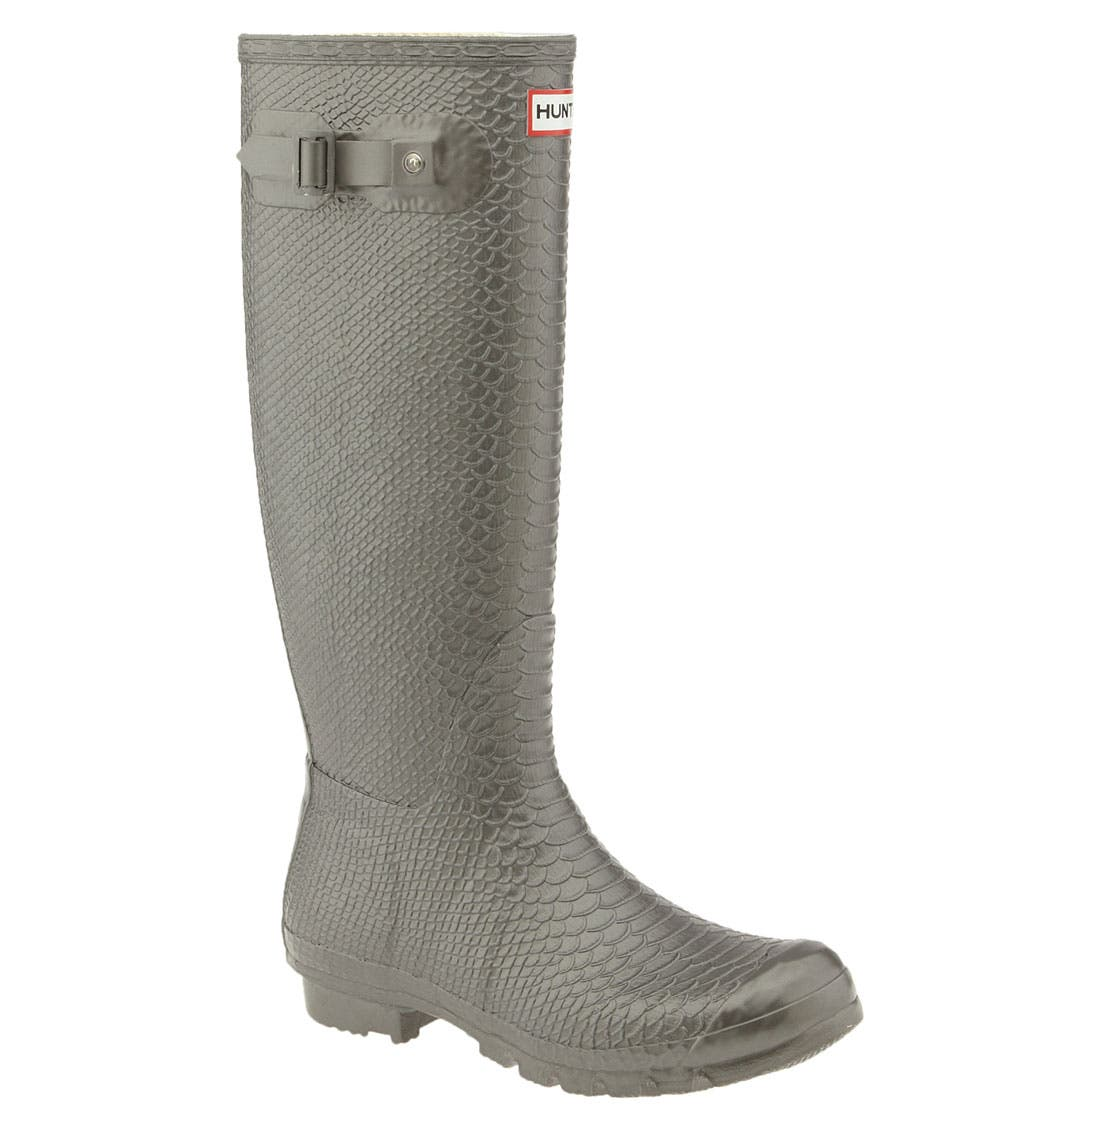 Alternate Image 1 Selected - Hunter 'Boa Tall' Rain Boot